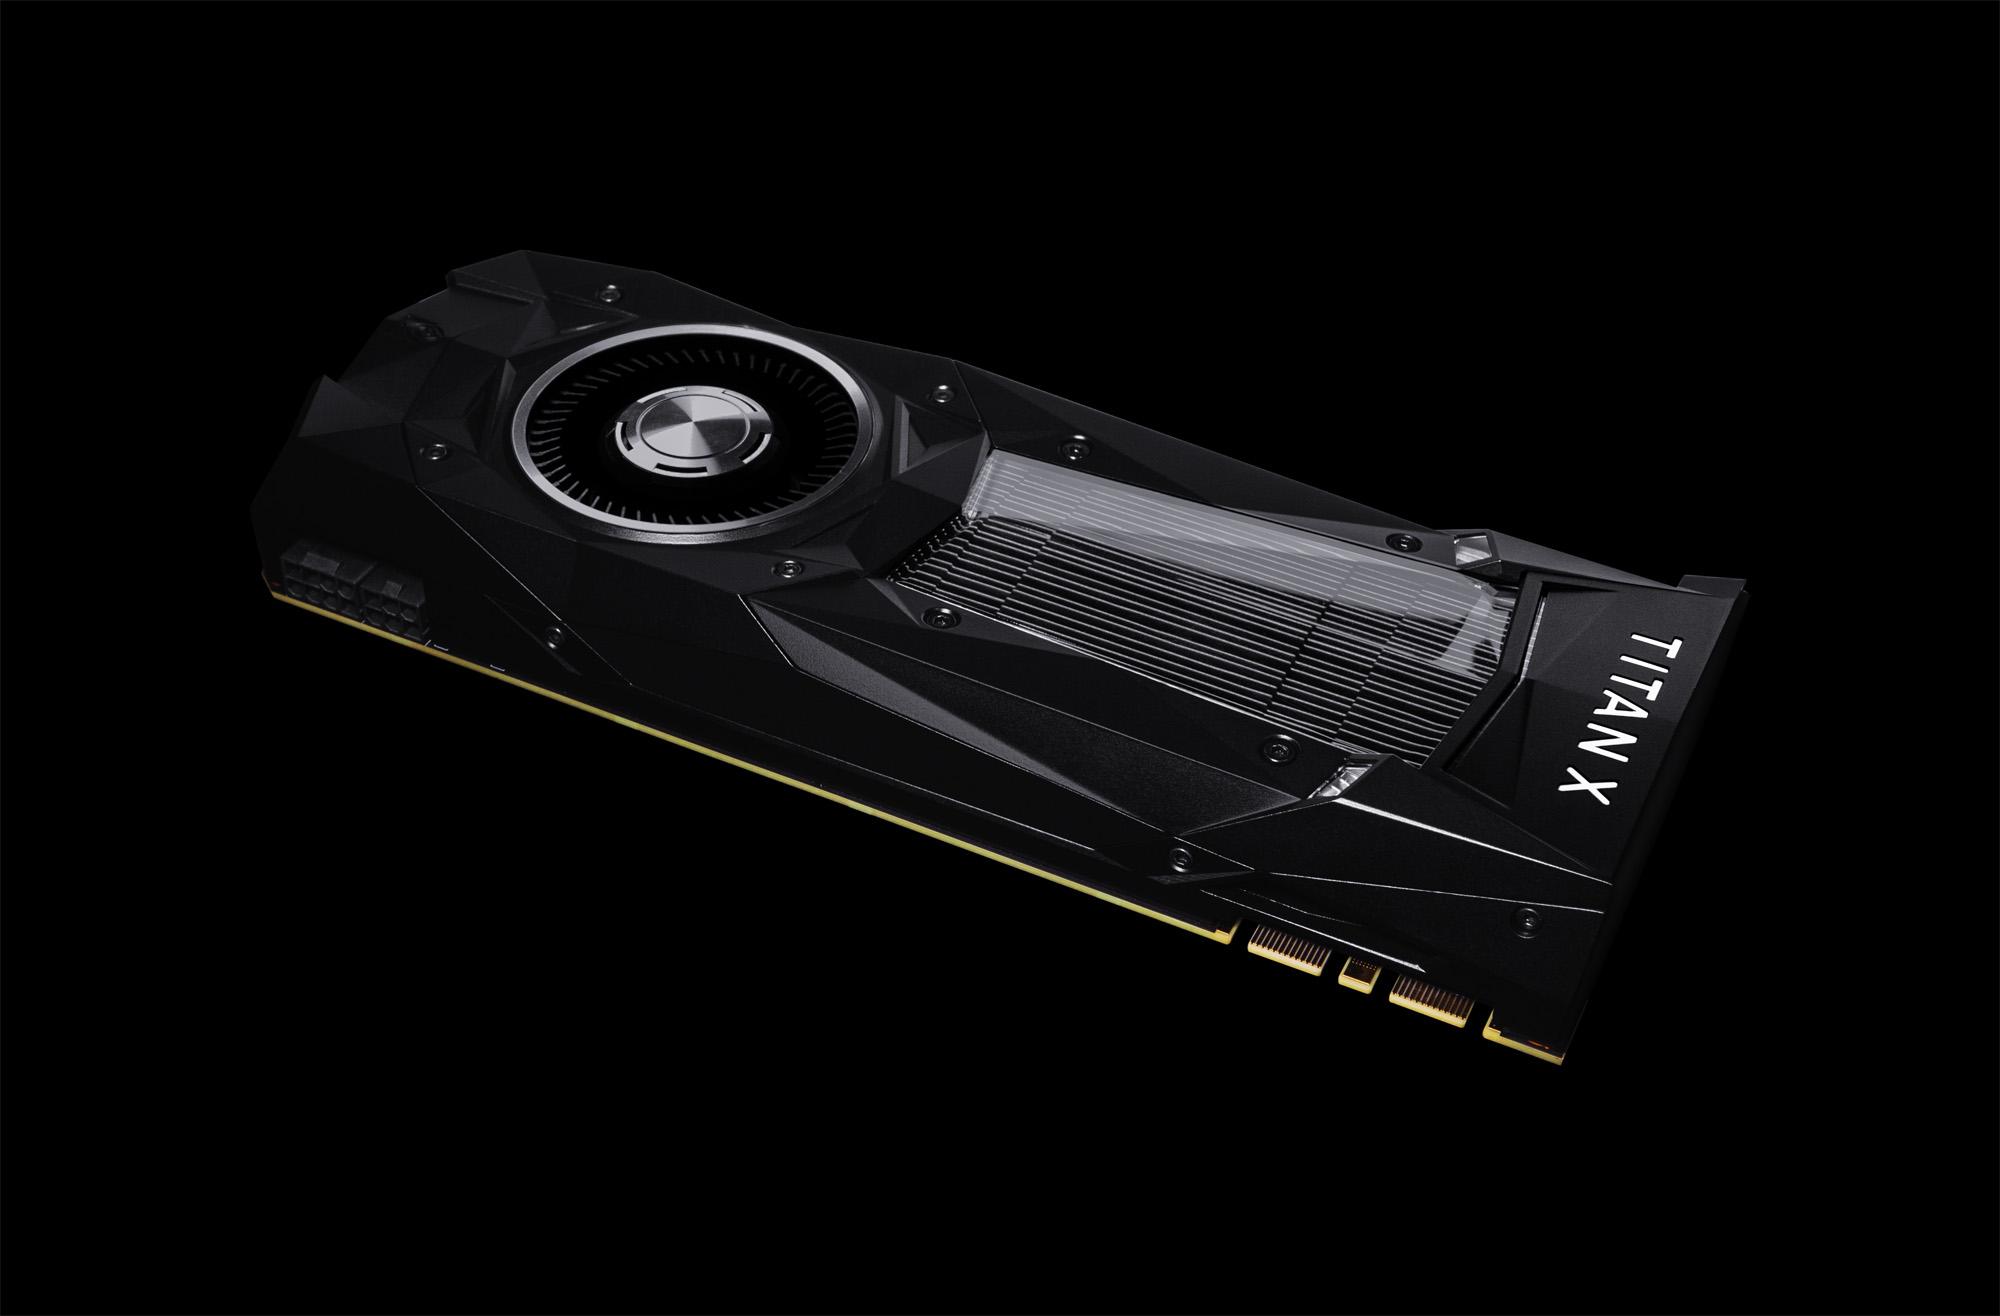 GeForce RTX 2080 Ti Graphics Card